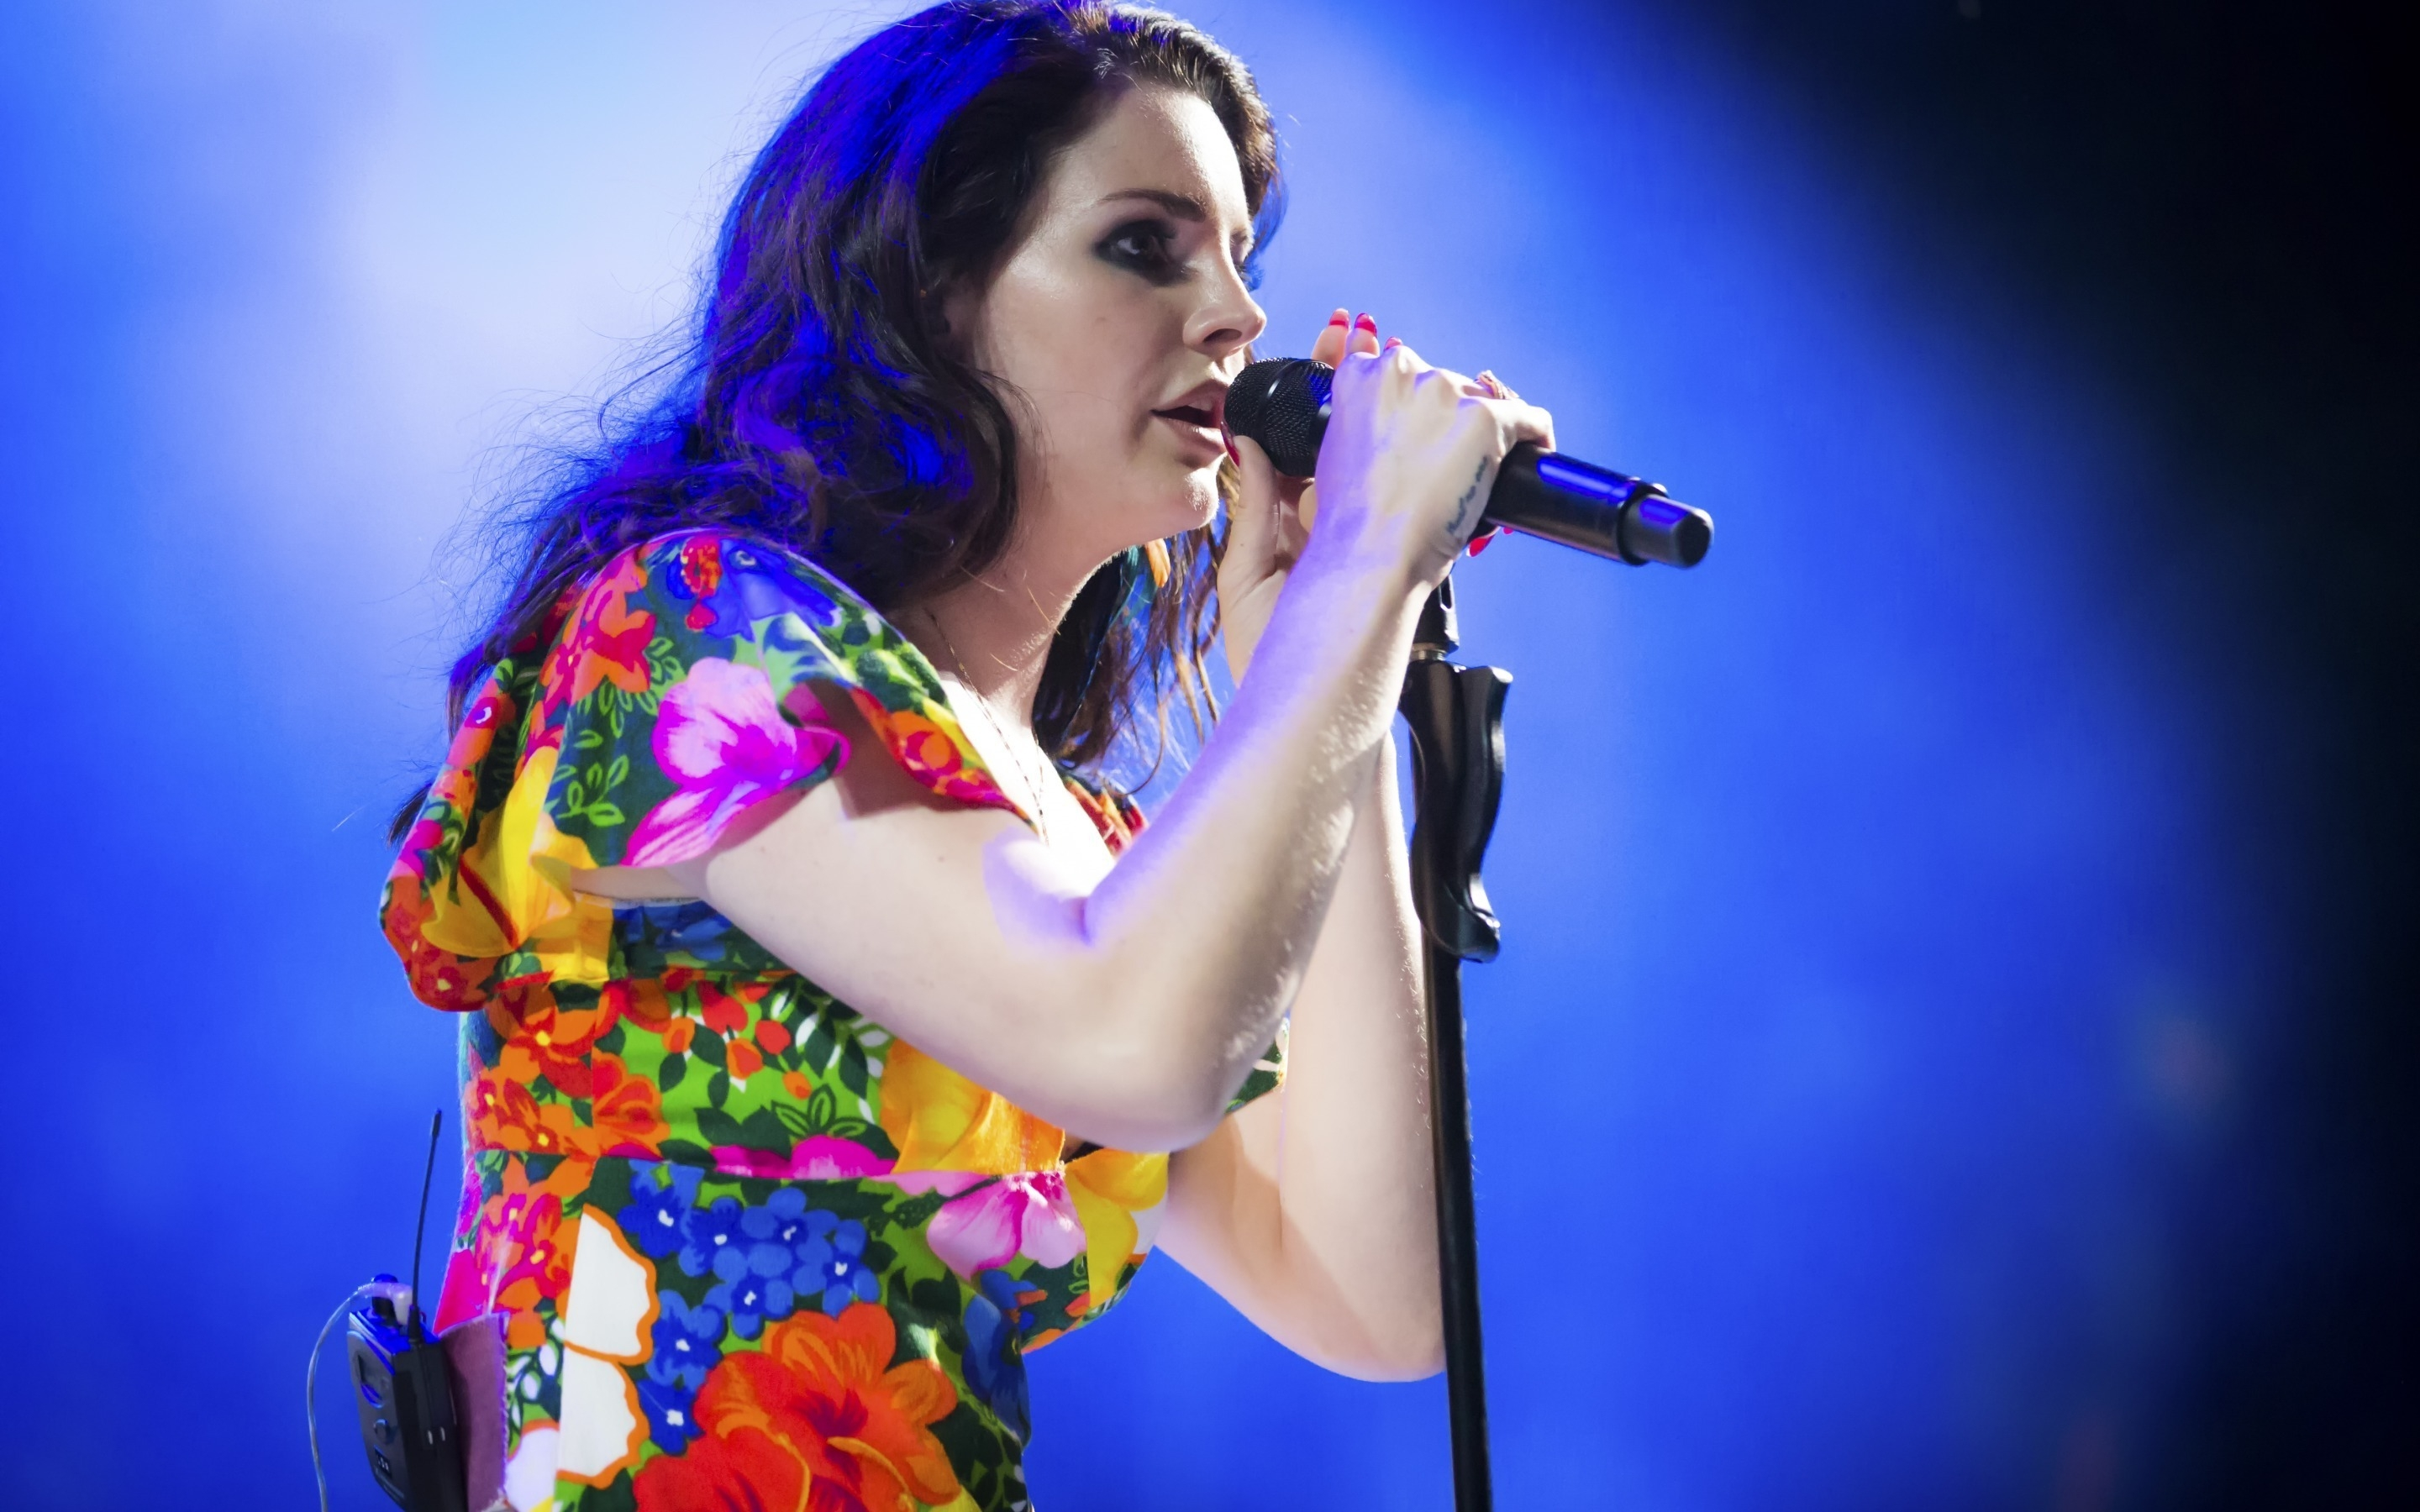 Lana Del Rey Performing Coachella for 2880 x 1800 Retina Display resolution